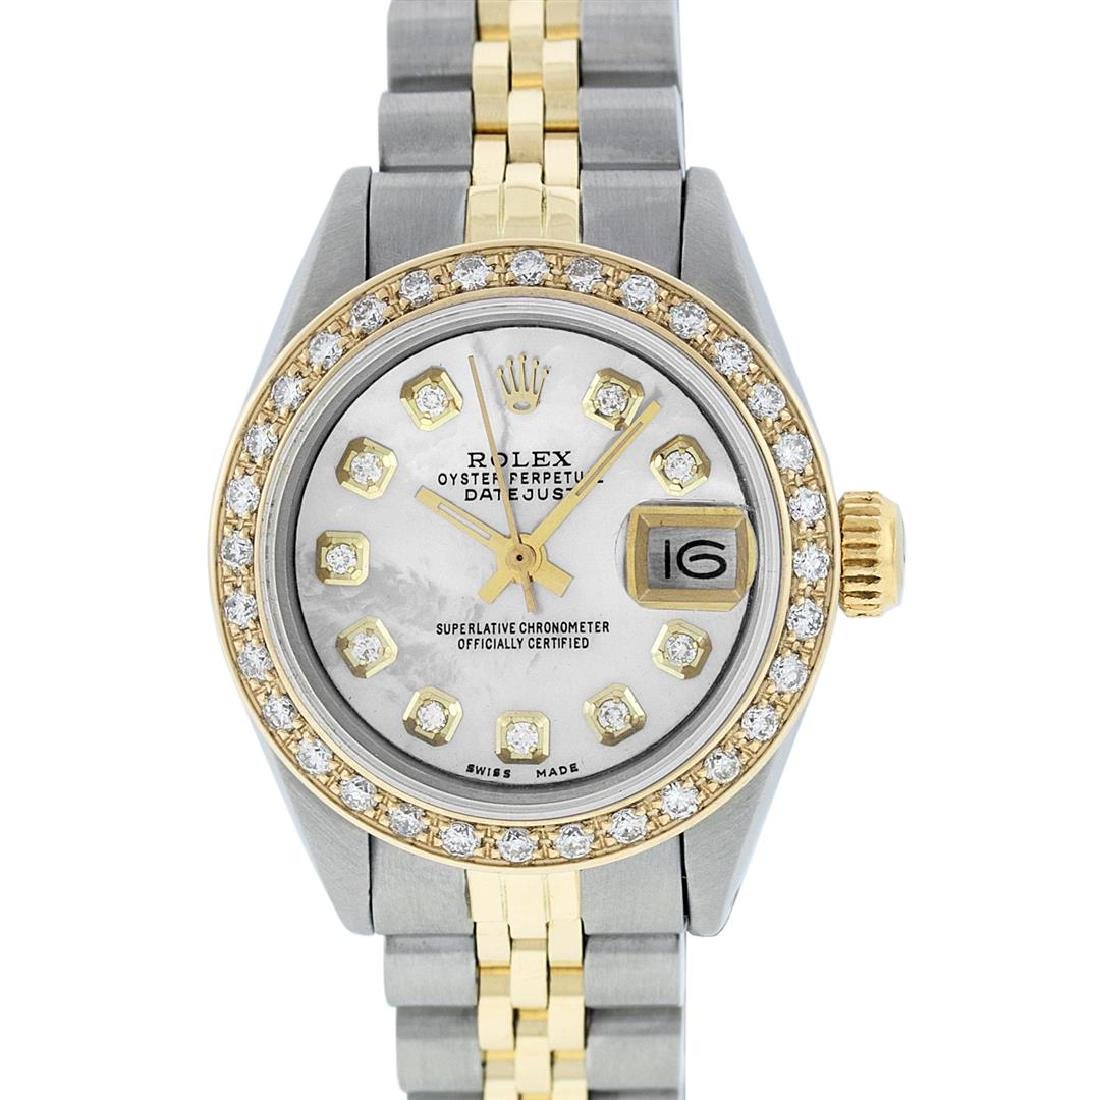 Rolex Ladies Two Tone 14K MOP Diamond Datejust Watch - 2